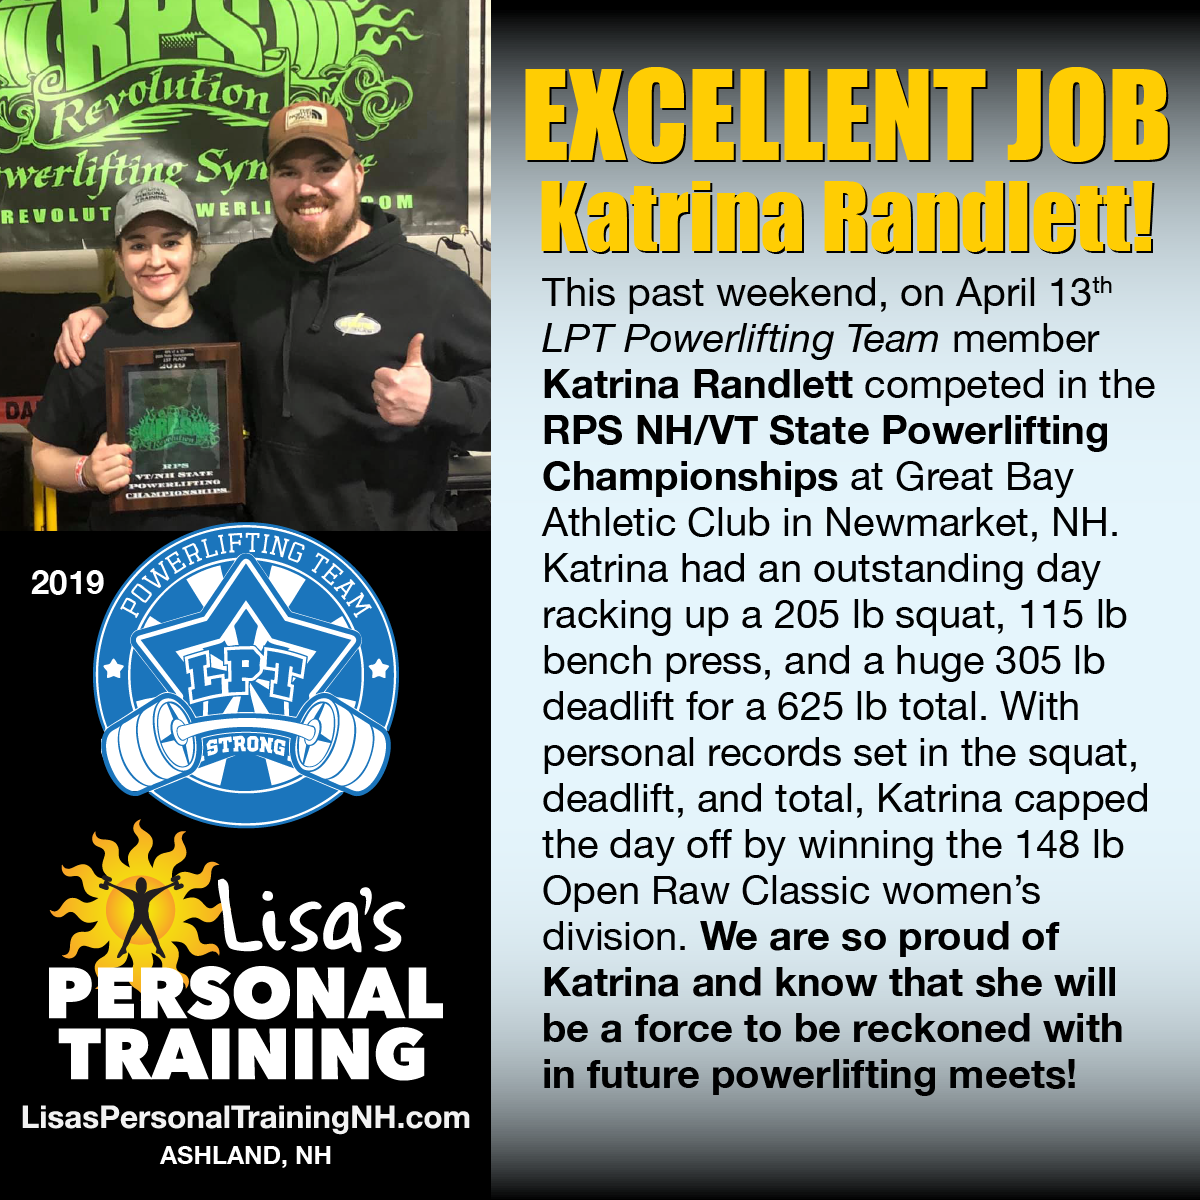 LPT Powerlifting Team member Katrina Randlett competed in the RPS NH/VT State Powerlifting Championships at Great Bay Athletic Club in Newmarket, NH